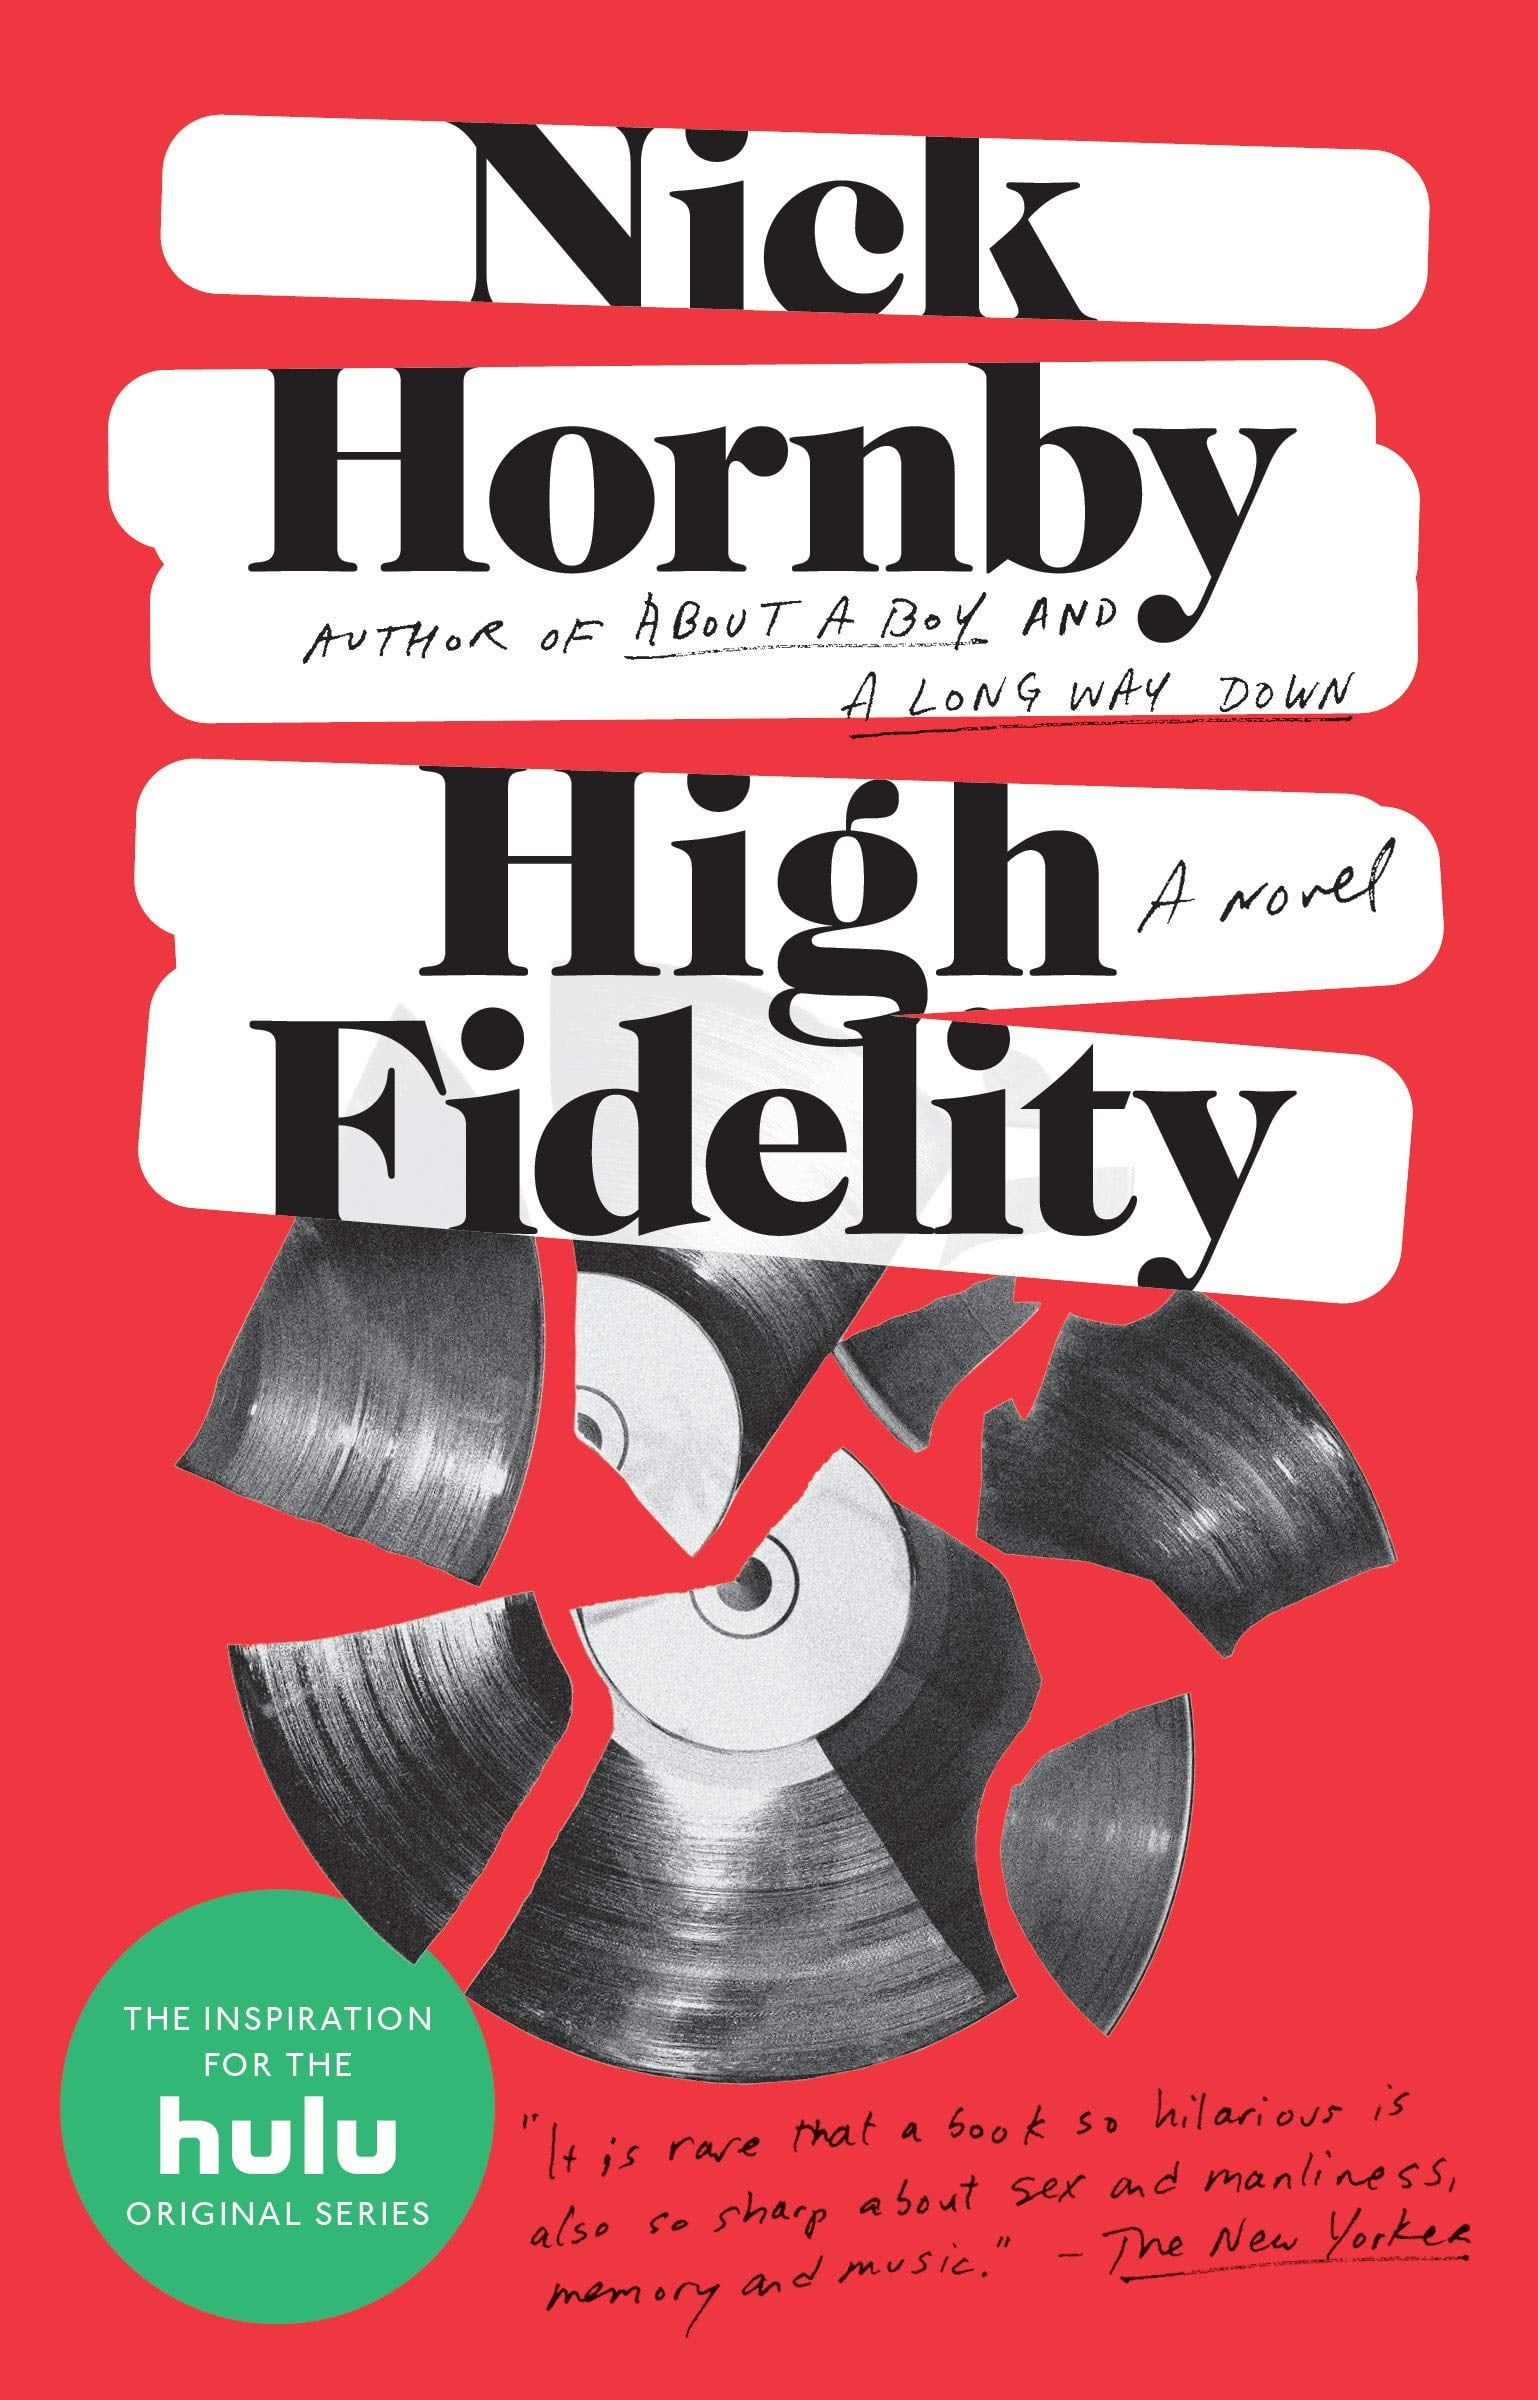 You Should Read High Fidelity — But If You Don't, Here Are the Top 5 Plot Spoilers